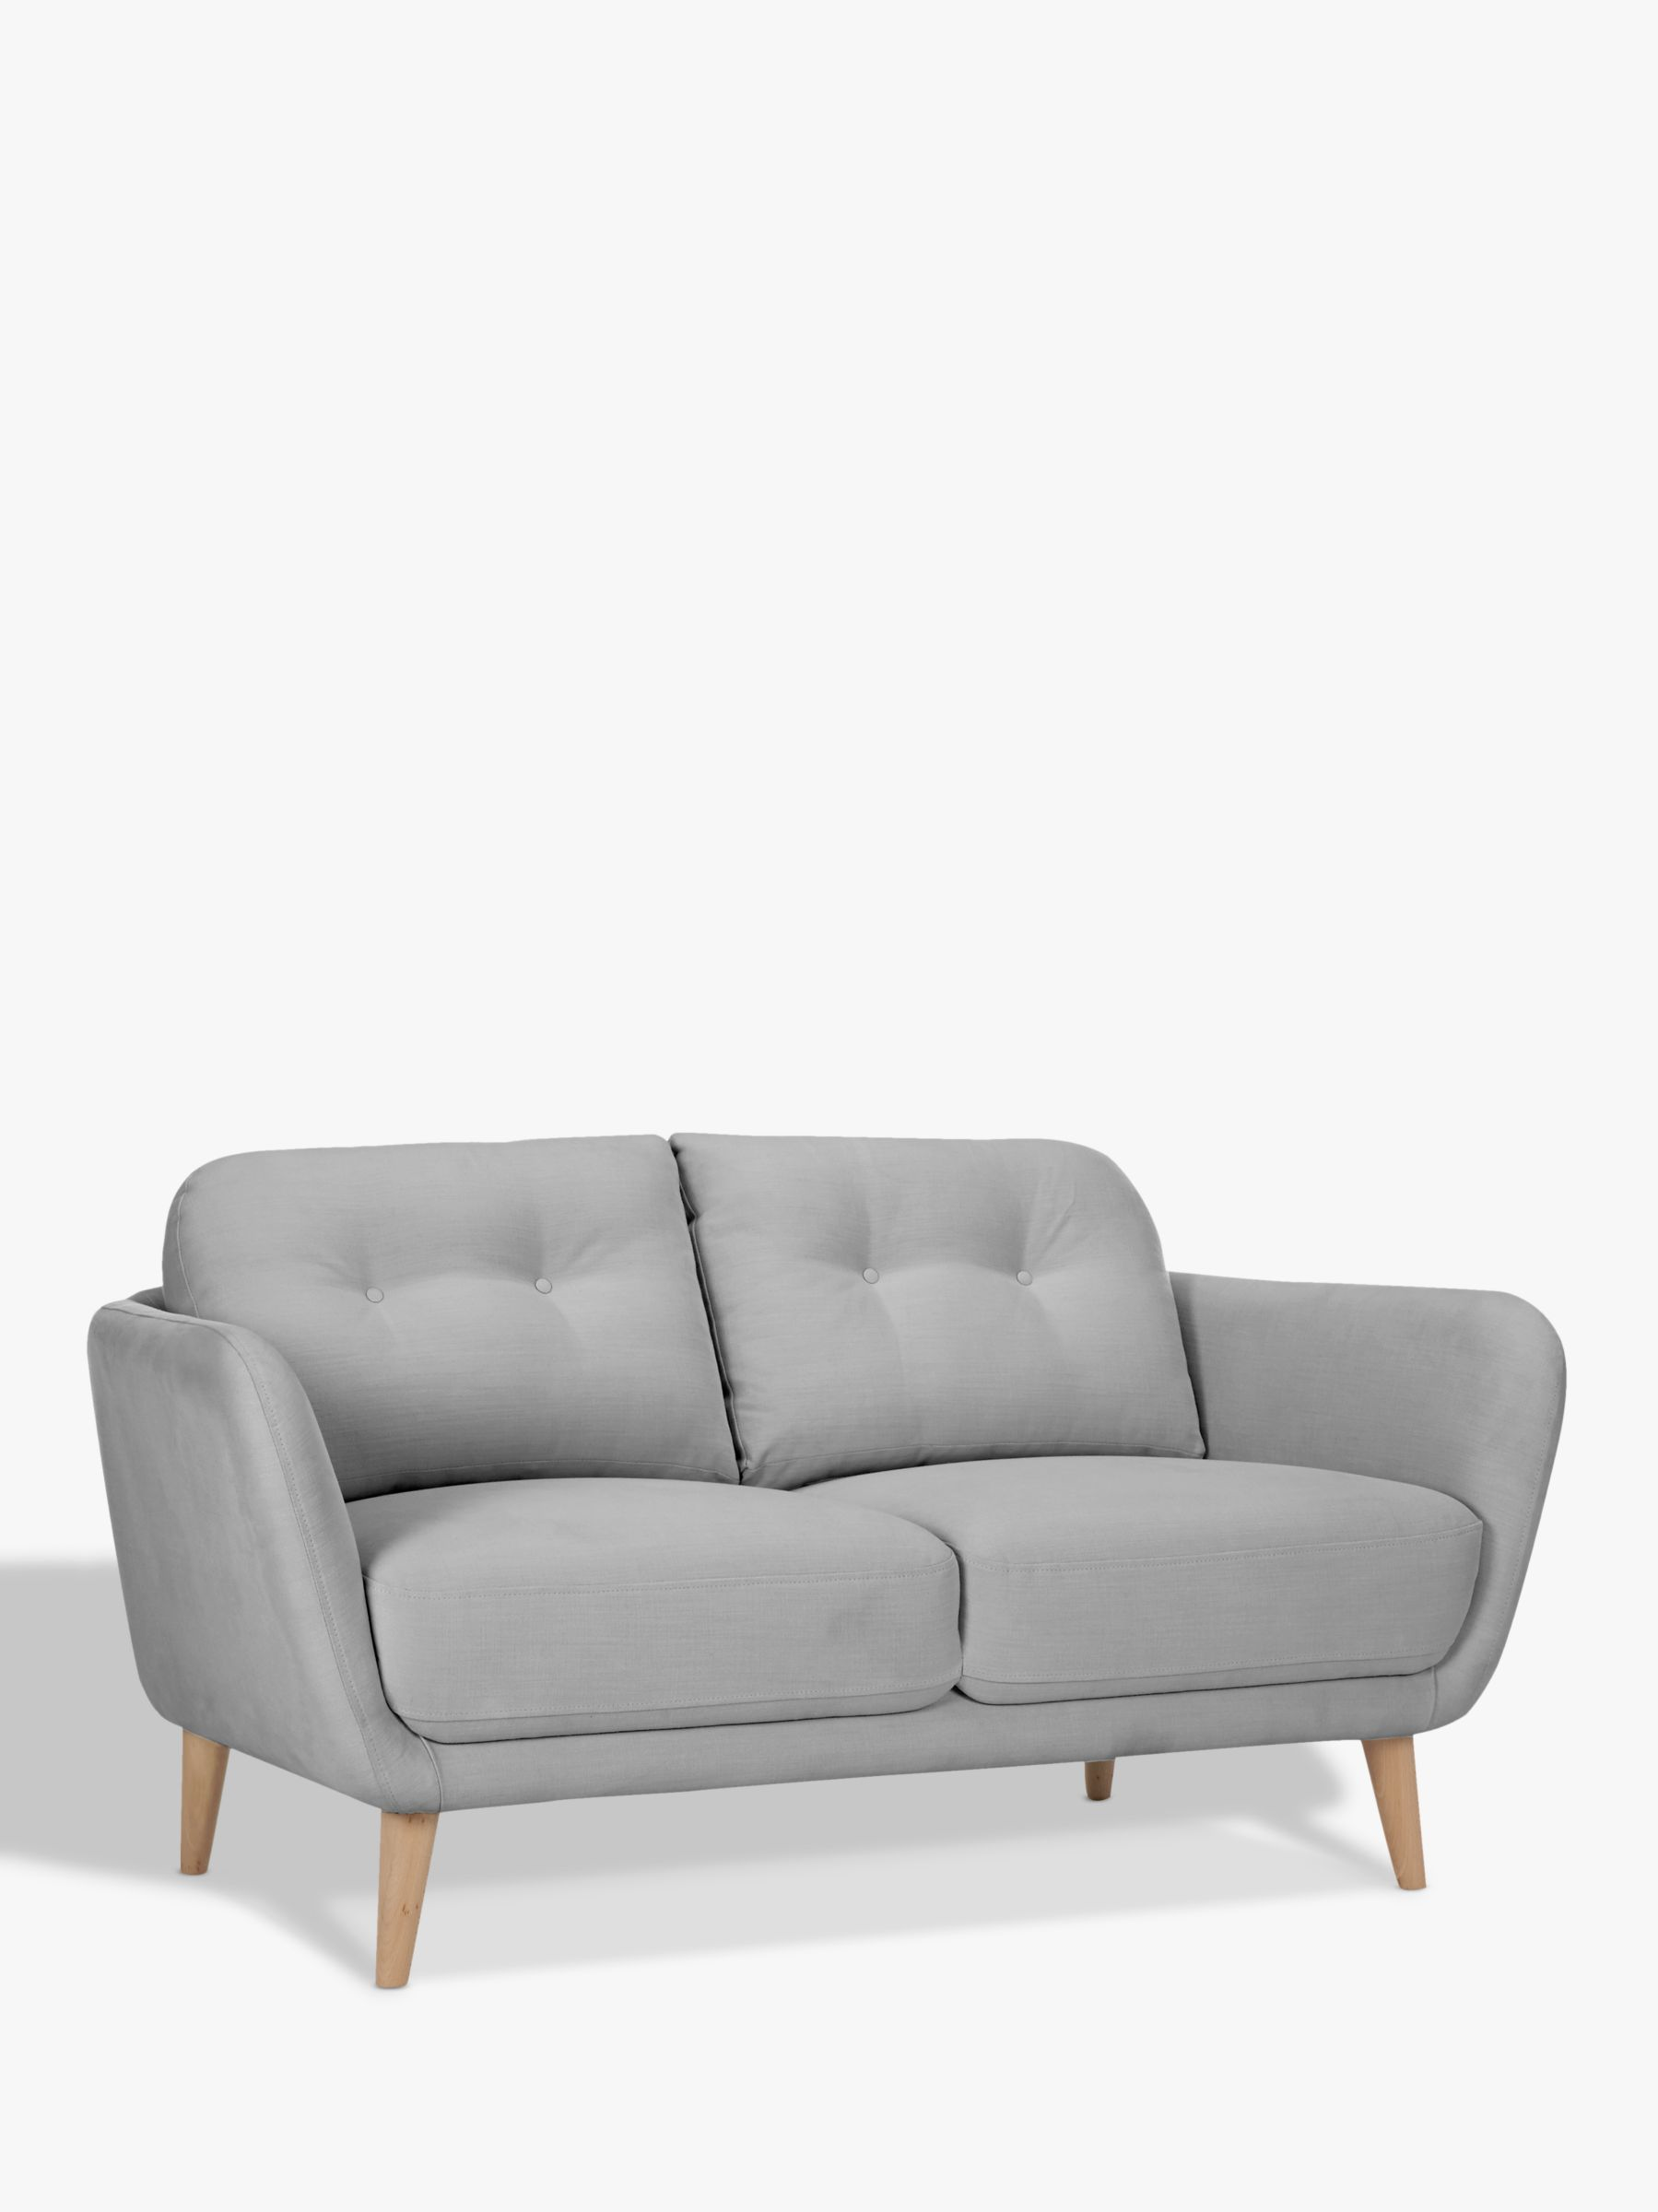 Sofa Online Purchase House By John Lewis Arlo Small 2 Seater Sofa Light Leg